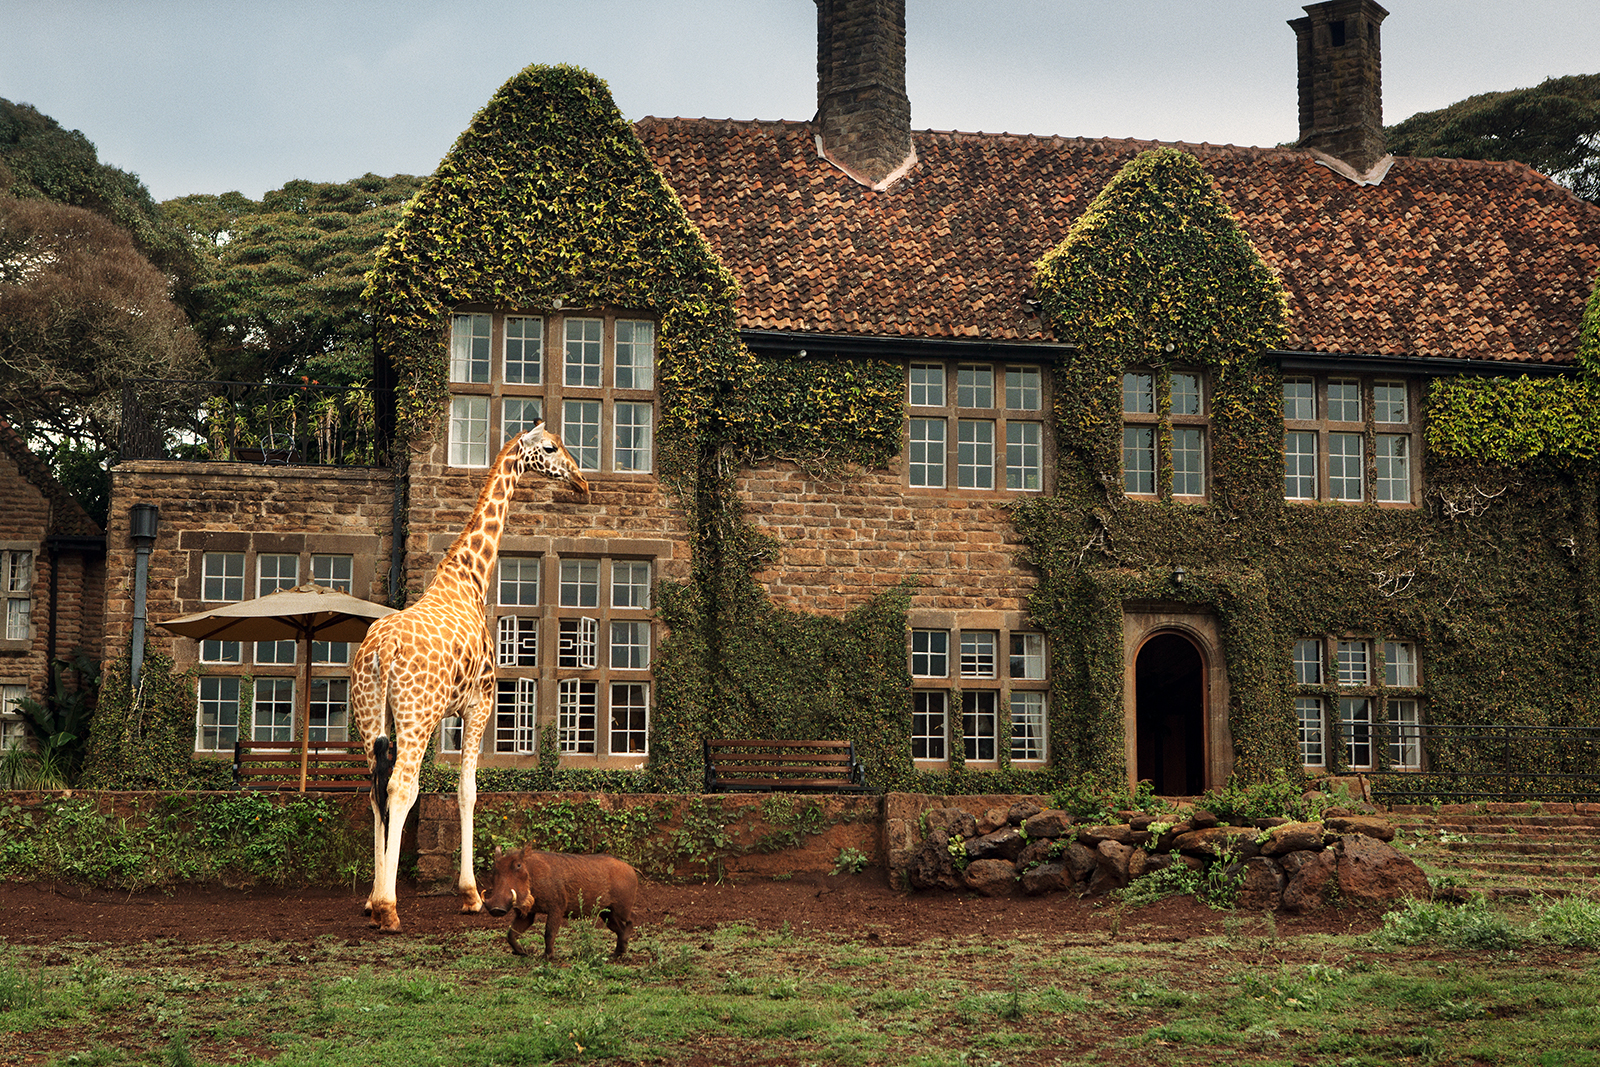 Giraffe Manor #9 by Klaus Thymann